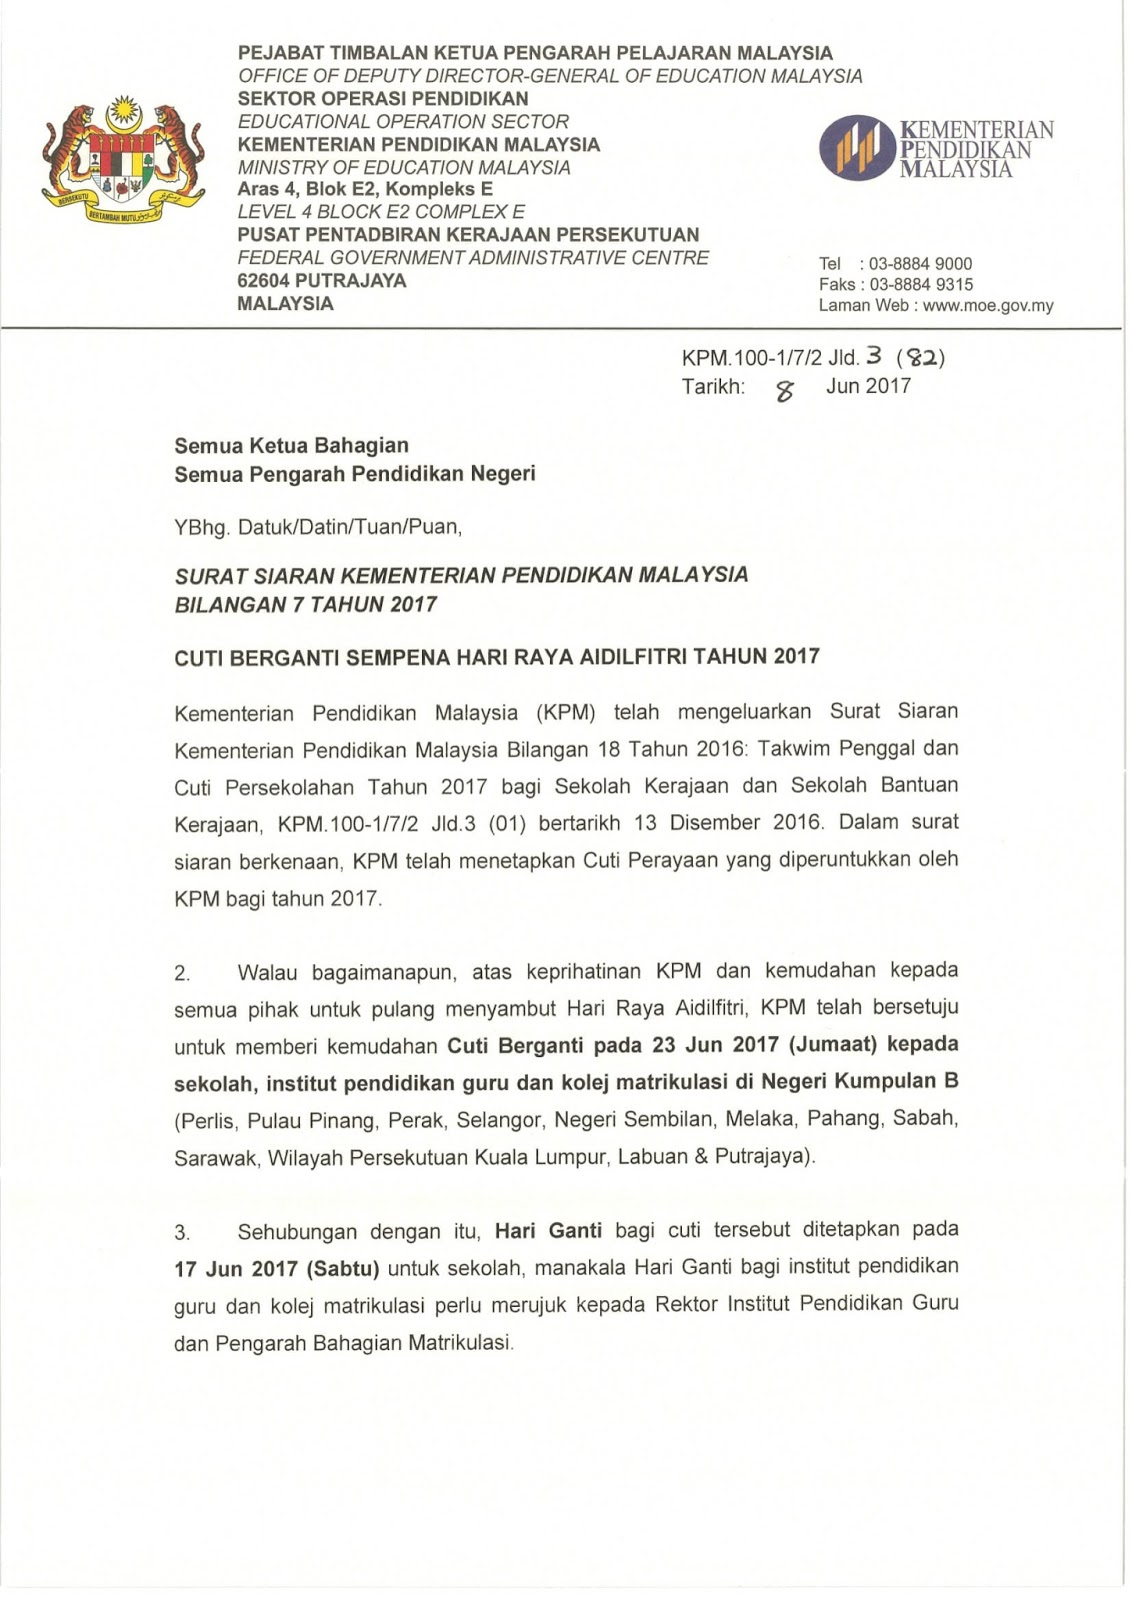 short essay about hari raya Describing festival essay hari raya aidilfitri october 21st, 2018 by   uzbek food essay chuchvara essay sample free zaytoven write essay about health time an essay on extreme sport most abortion research paper topics management essay sample effect air pollution references format research paper unisaw best problem solution essay video games.